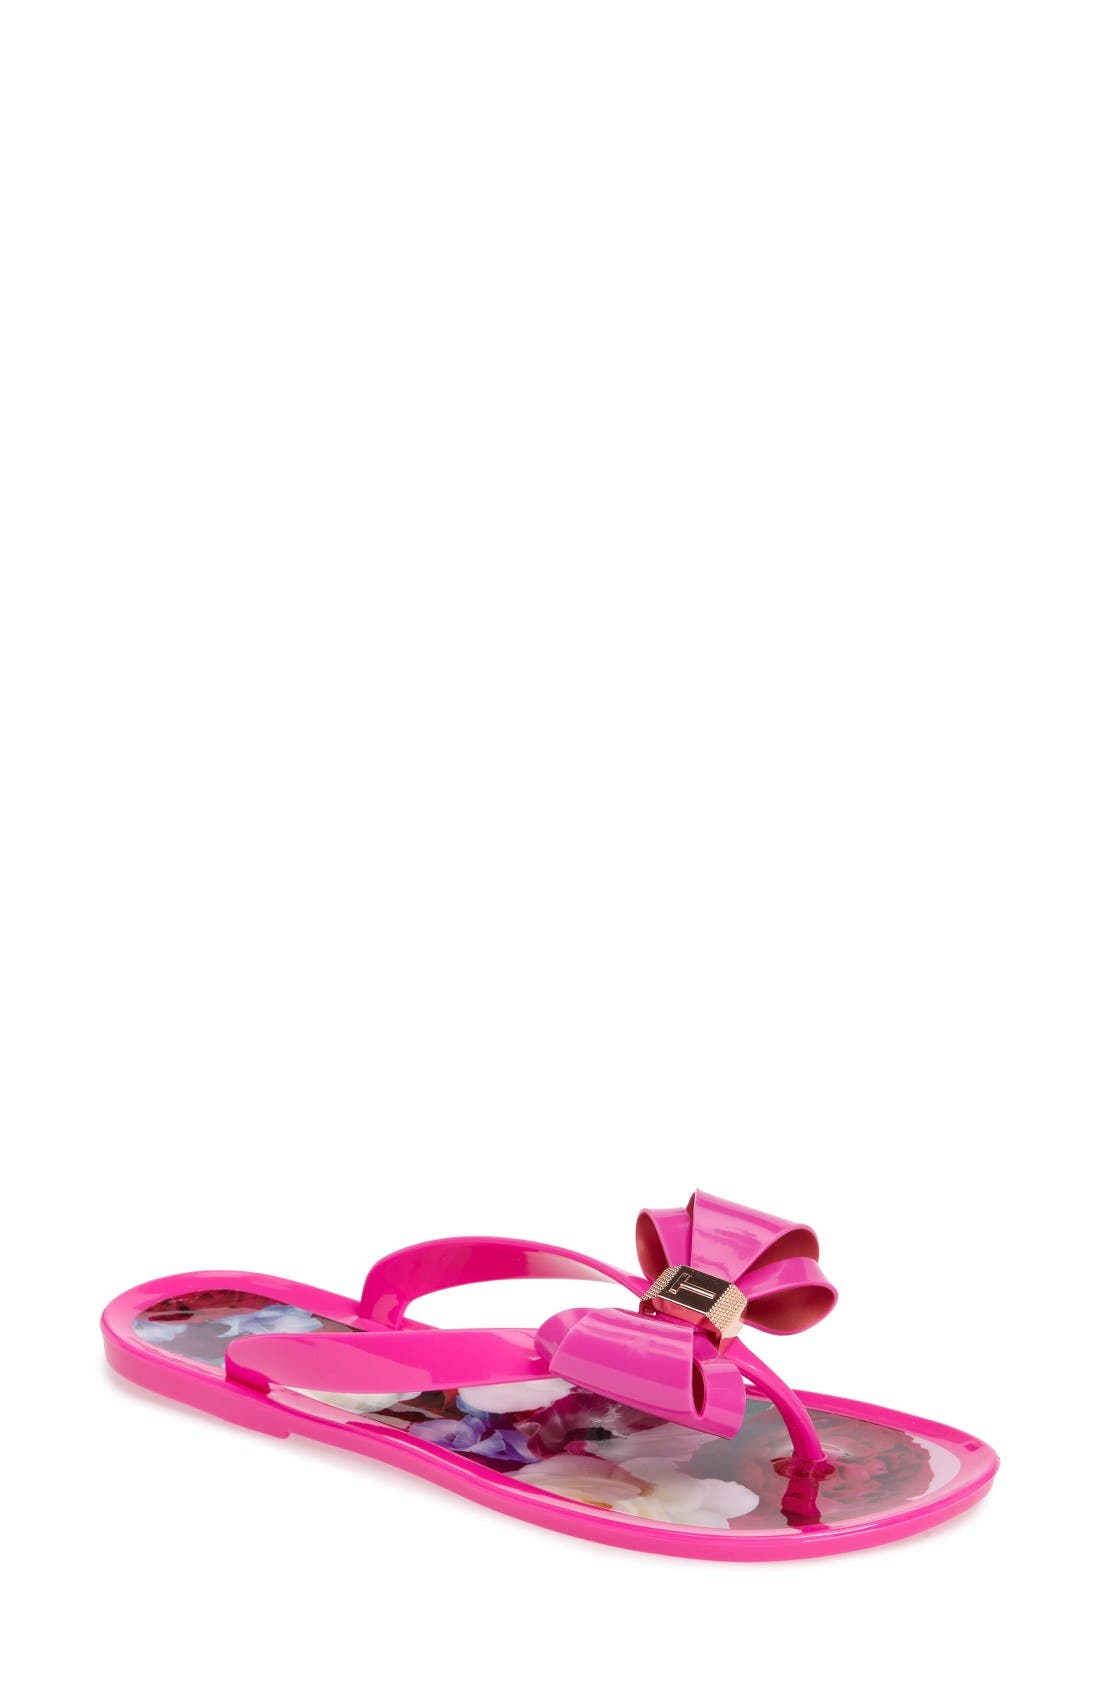 Alternate Image 1 Selected - Ted Baker London Rueday Bow Flip Flop (Women)